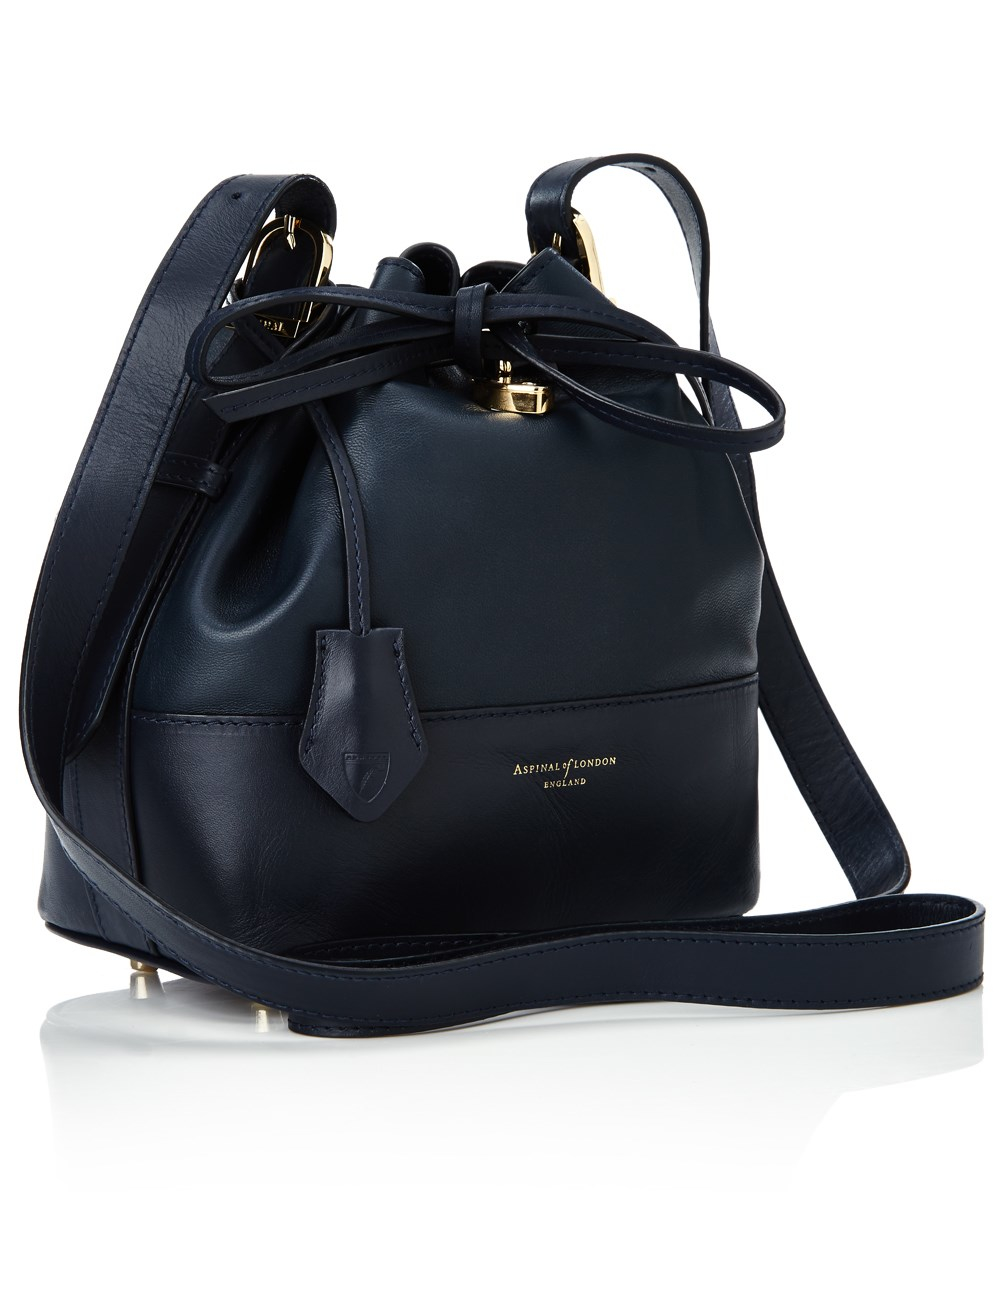 Aspinal Navy Leather Drawstring Bucket Bag in Blue | Lyst